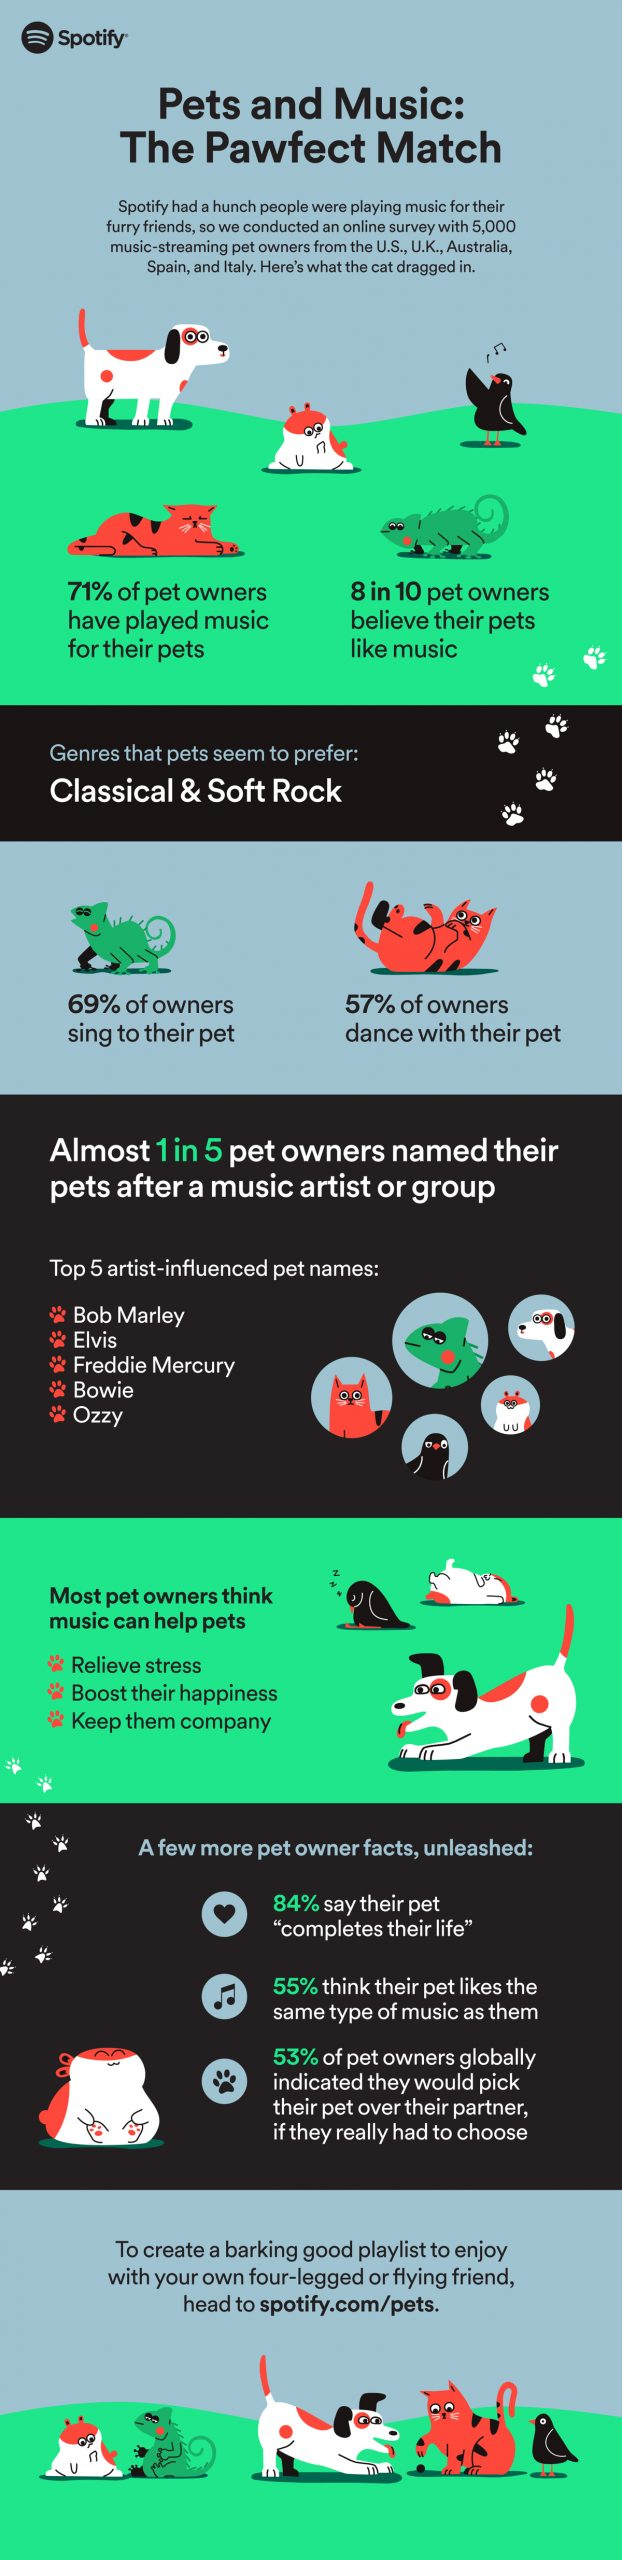 Pet Playlists on Sptofiy_Infographic